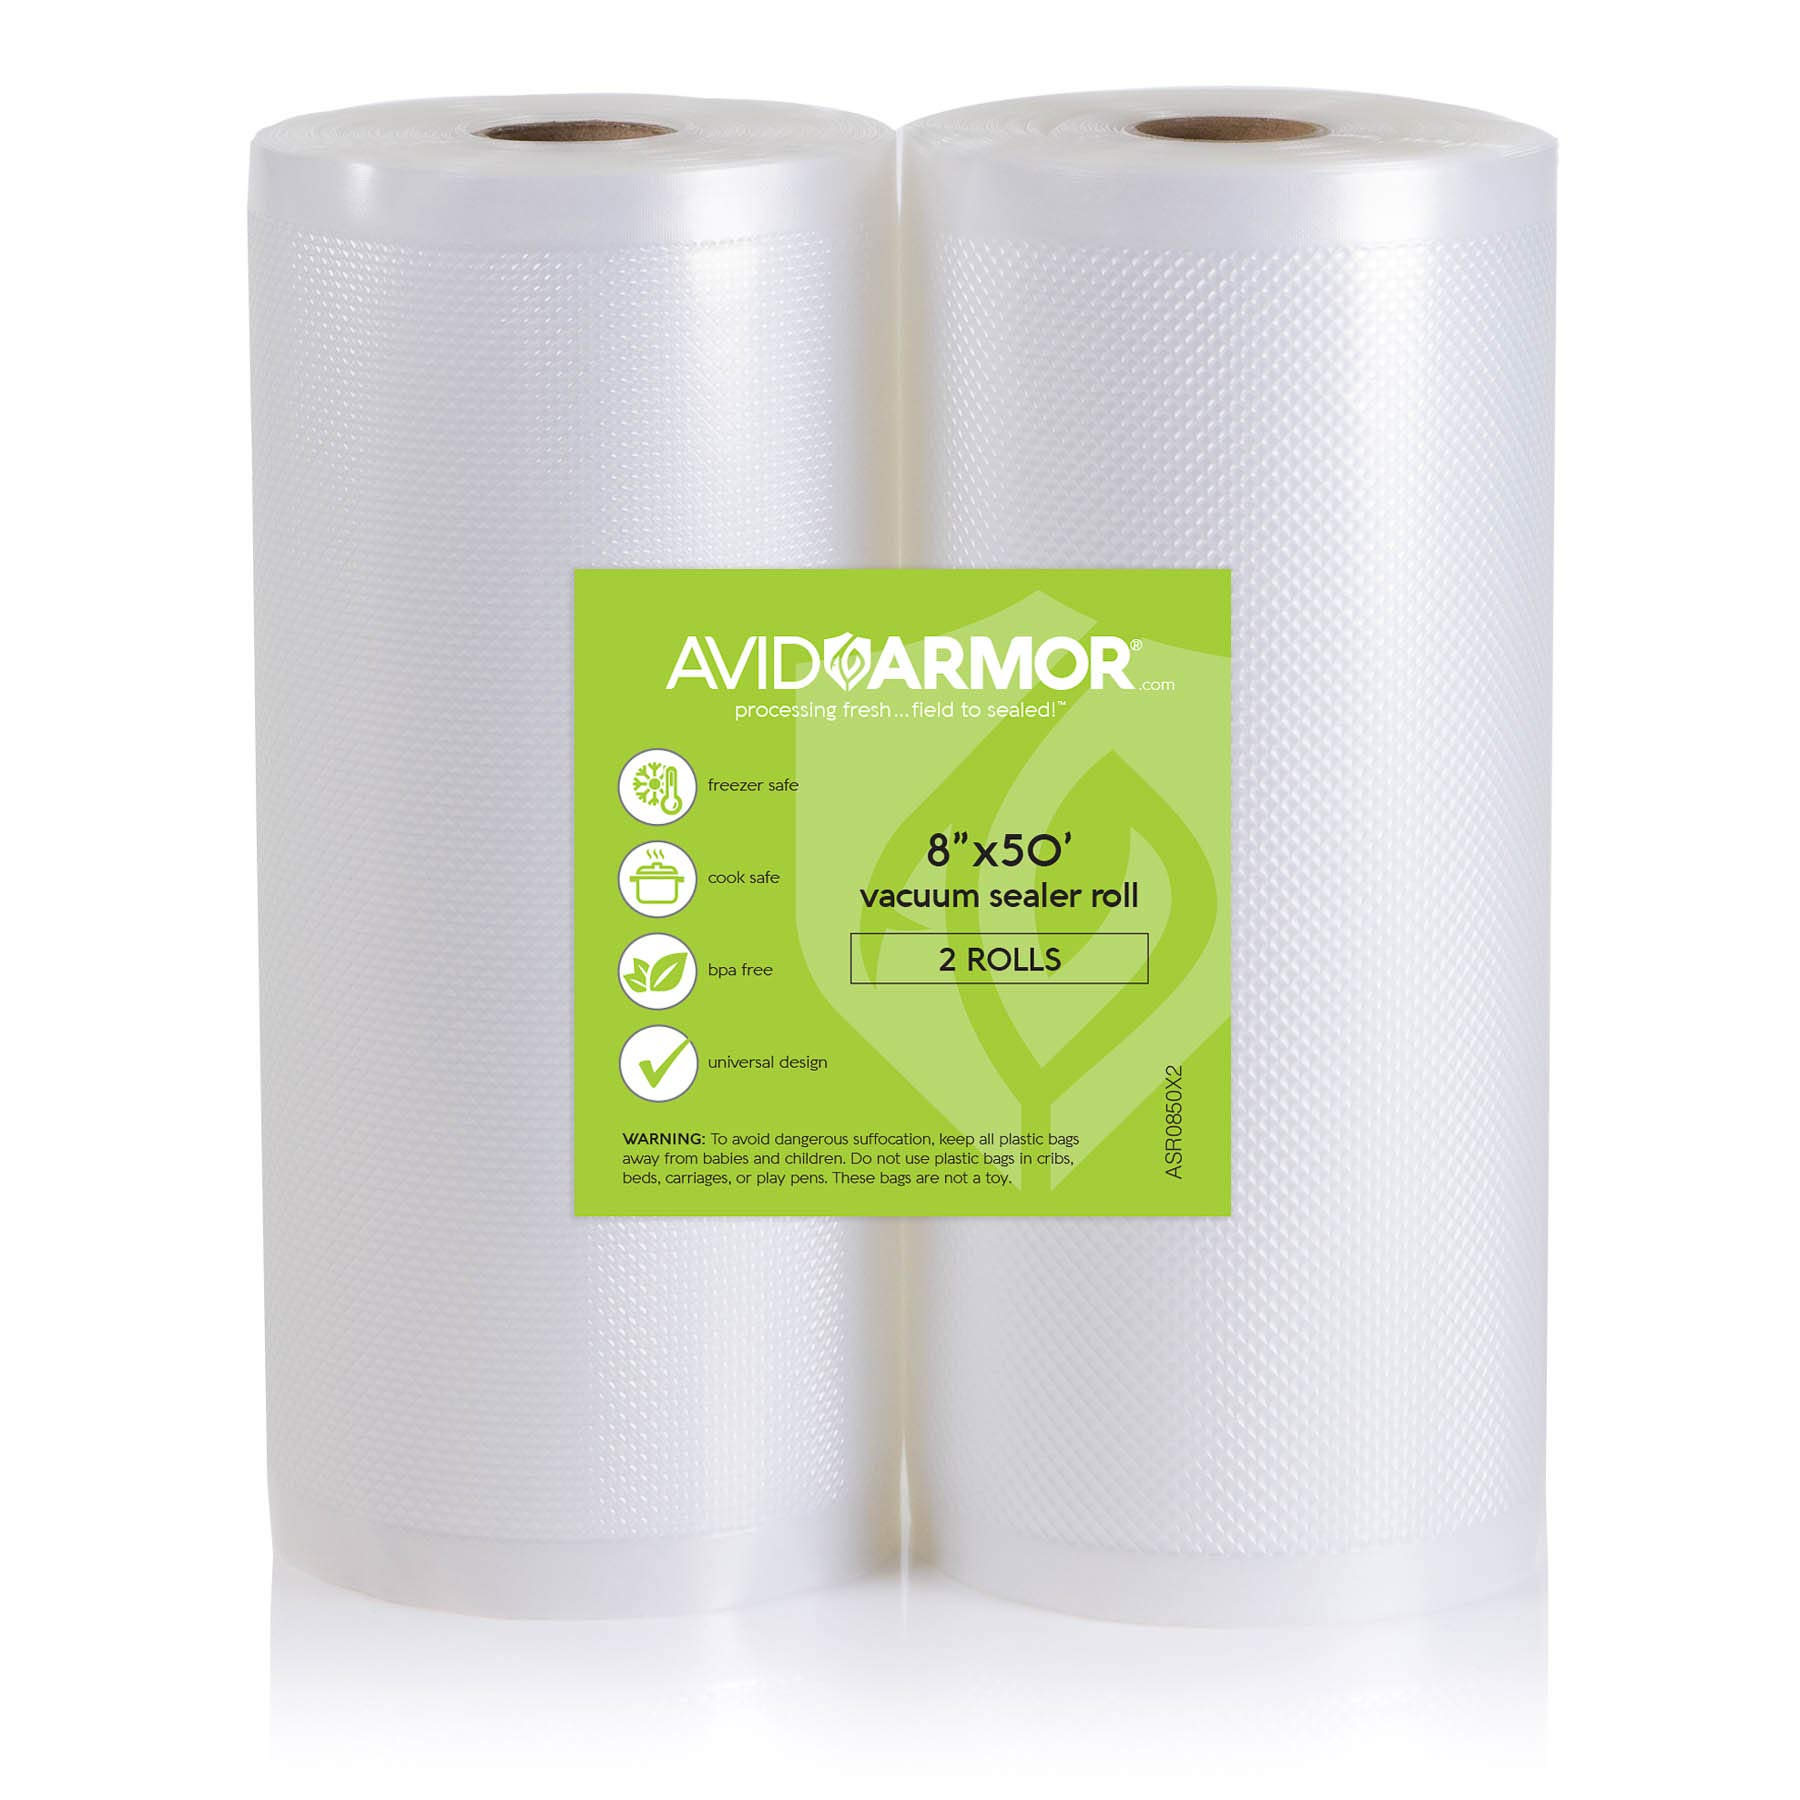 2 Pack 8'' x 50' Rolls Vacuum Sealer Bags for Food Saver, Seal a Meal Vac Sealers Heavy Duty Commercial, BPA Free, Sous Vide Vaccume Safe, Cut to Size Storage Bag 100 Feet Embossed Avid Armor by Avid Armor